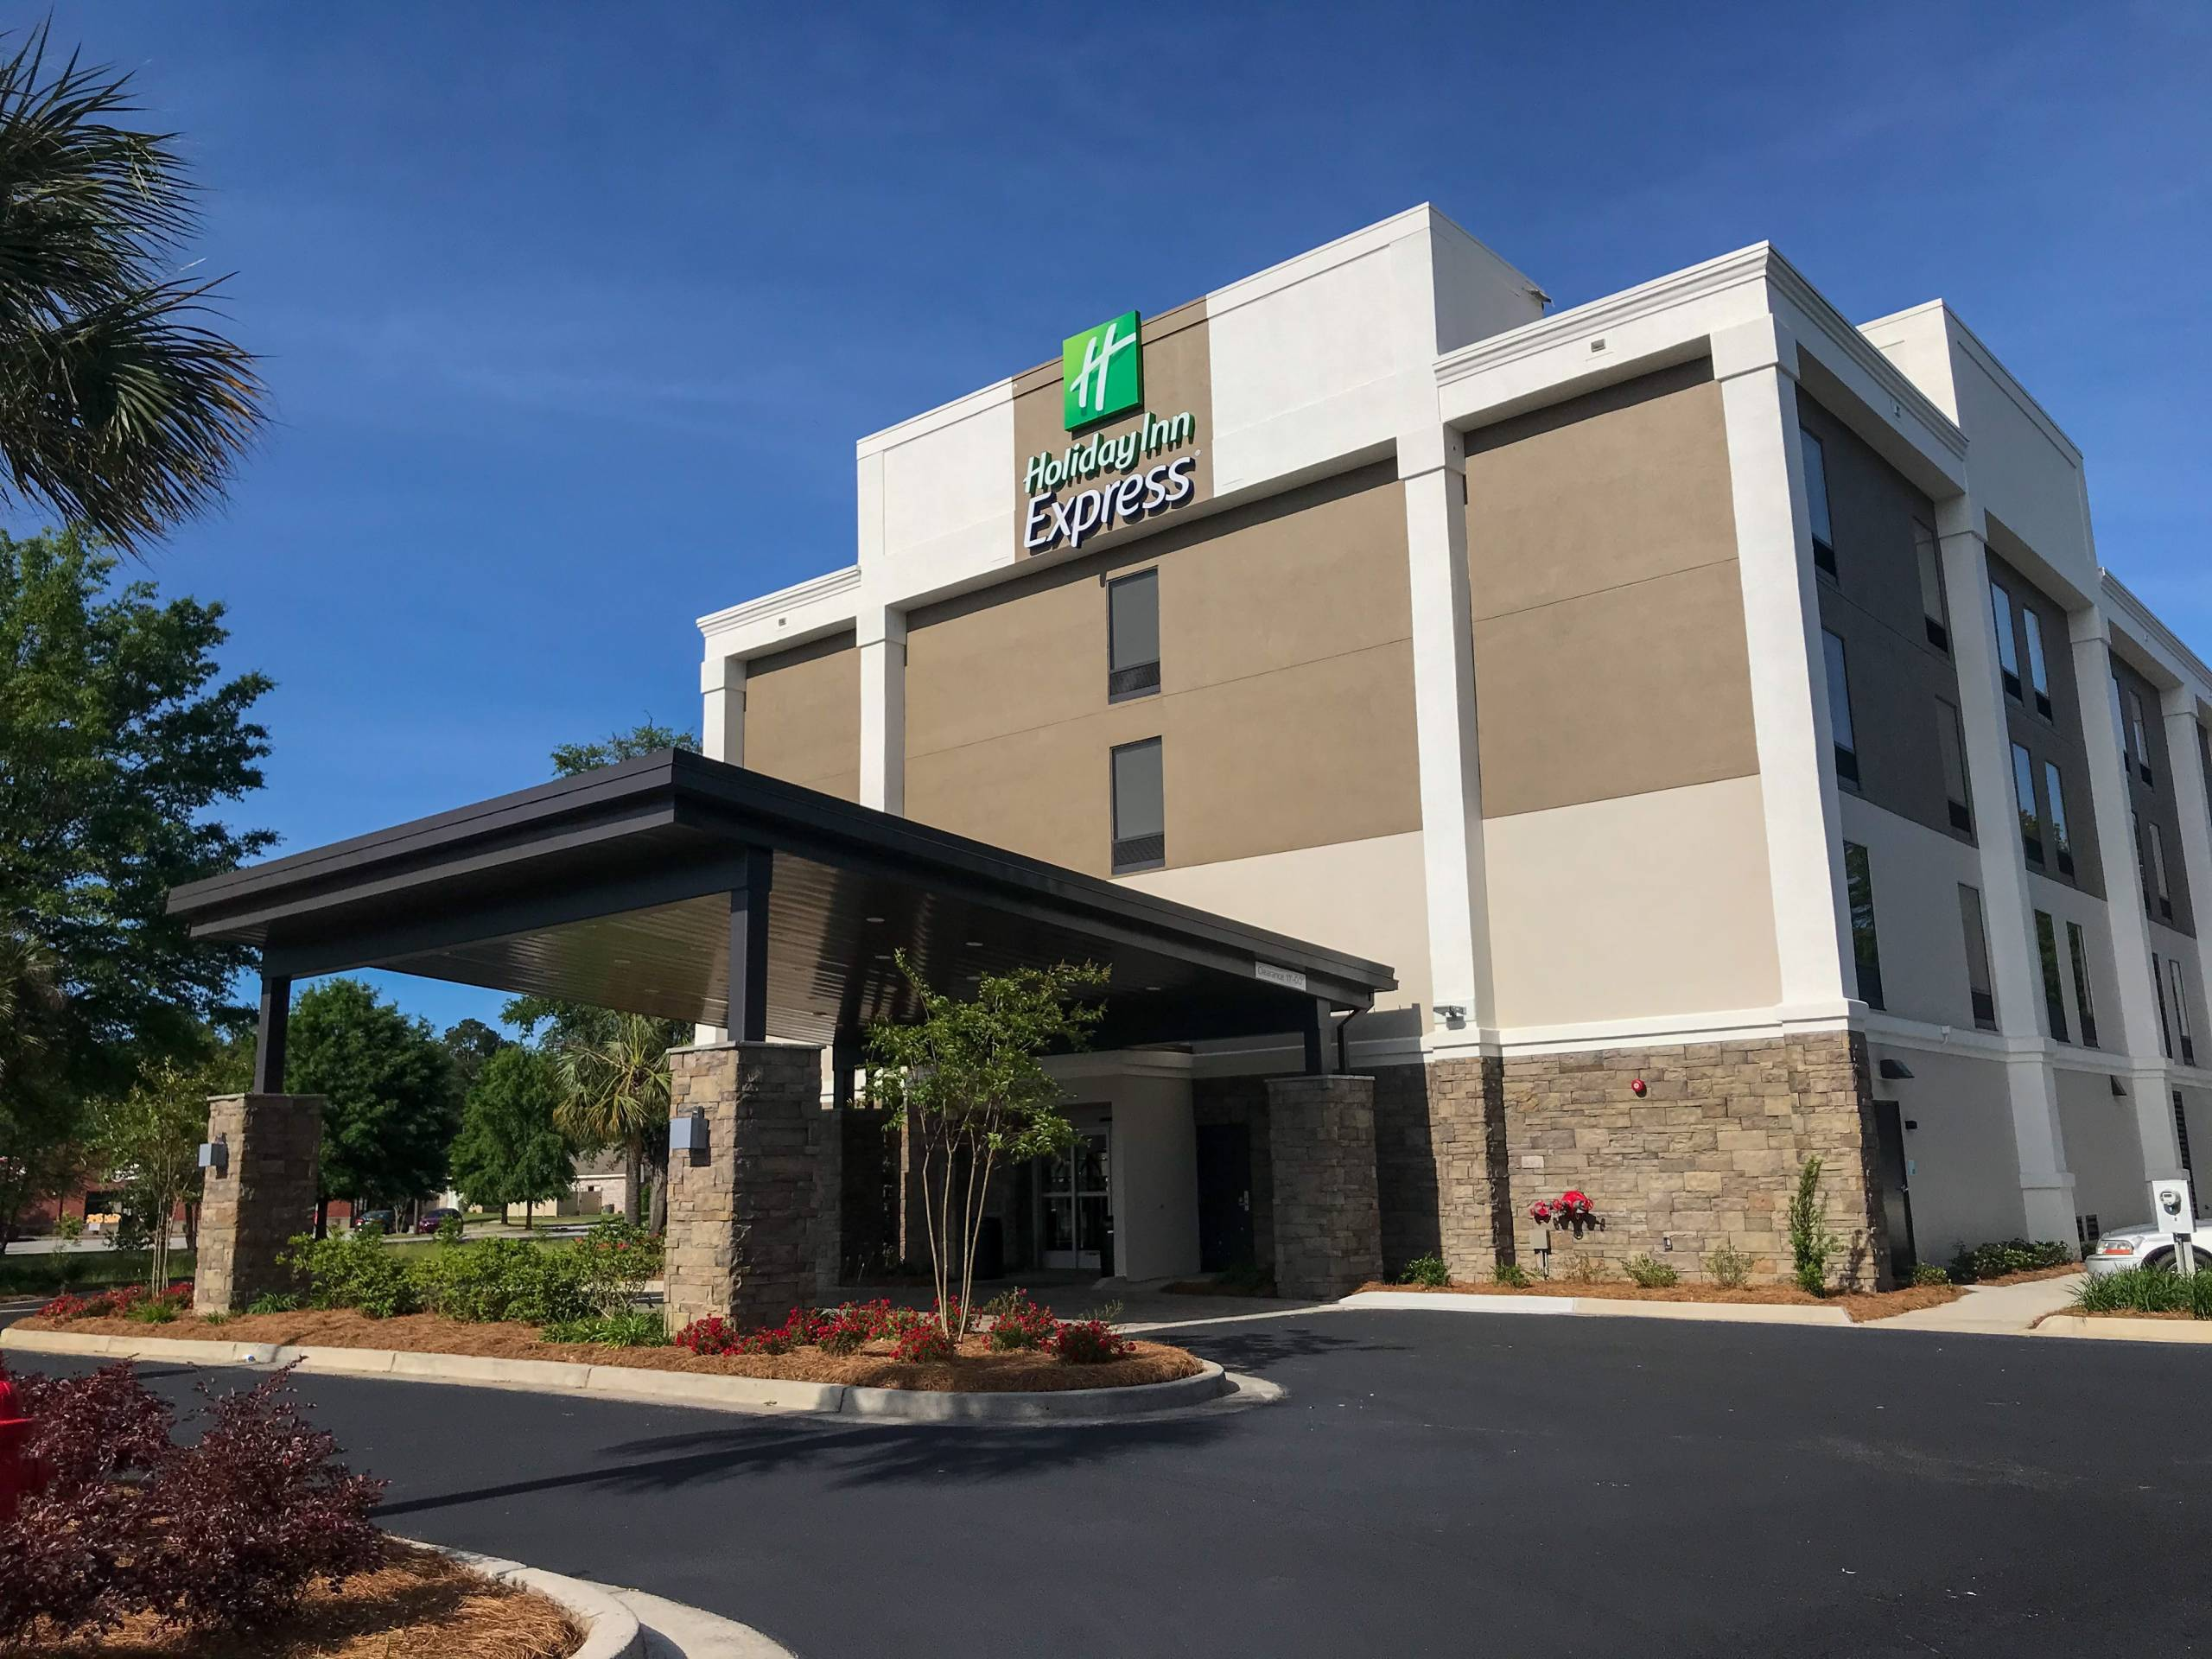 Business Spotlight: Holiday Inn Express Statesboro